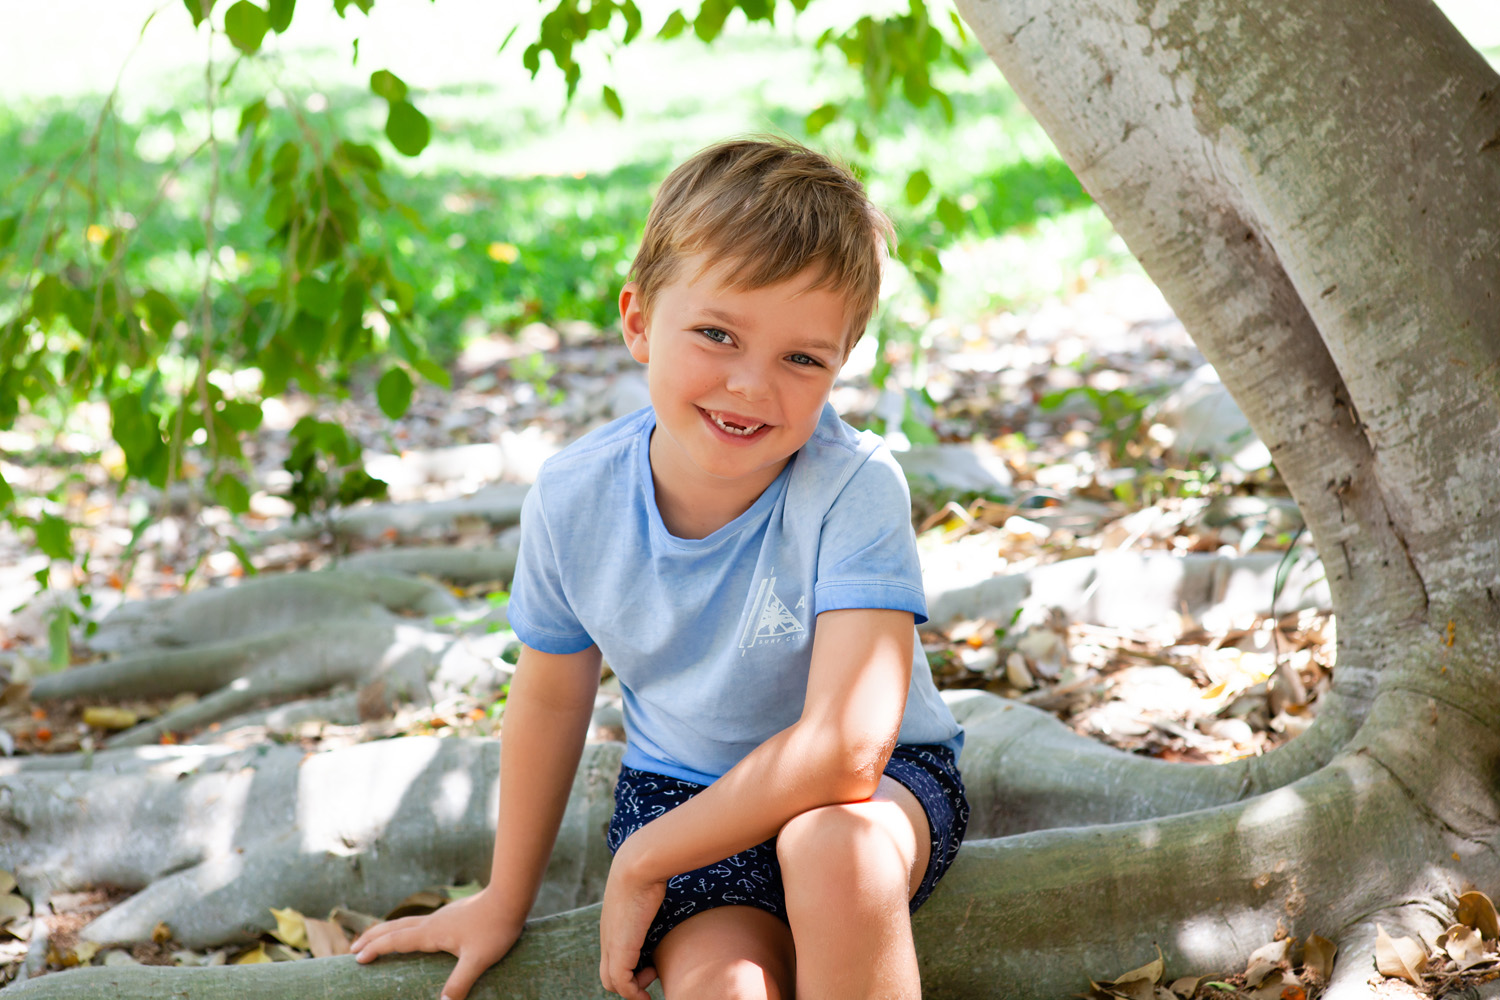 little boy sitting under a tree, gold coast best family portrait photographer, gold coast best family portrait photography, gold coast best family photographer, gold coast best family photography, gold coast family portraits, gold coast family portrait photographer, lana noir, @lananoir, gold coast natural light photography, gold coast outdoor photography, robina photographer, broadbeach photographer, gold coast professional photographer, gold coast families, gold coast children, gold coast kids photographer, gold coast childrens photographer, kids of the gold coast, children of the gold coast